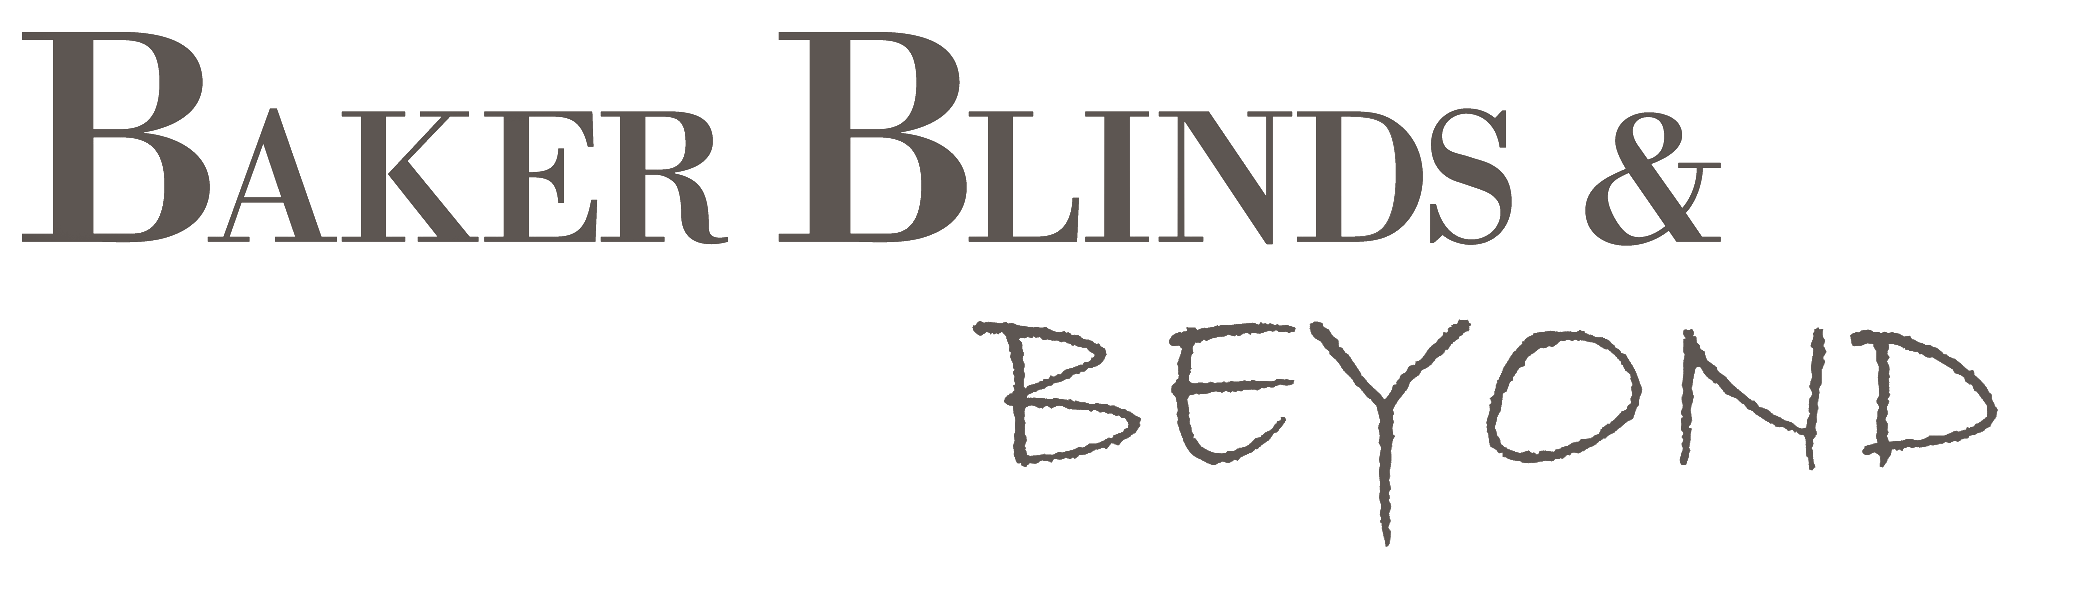 Baker Blinds & Beyond